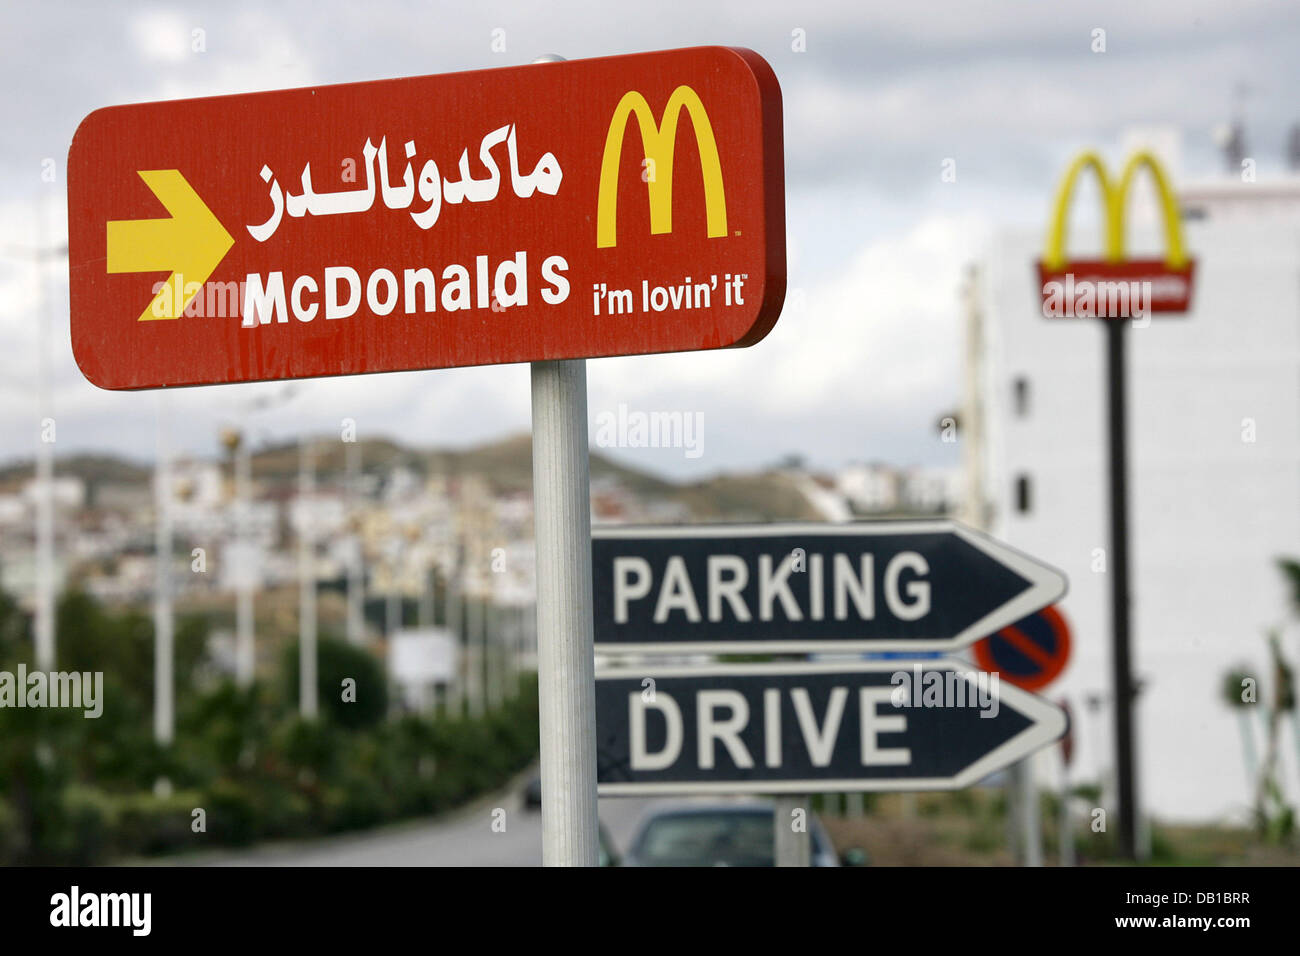 A sign indicates the way to a restaurant of the fastfood chain McDonald's in Arabic and Latin letters in Tetouan, - Stock Image